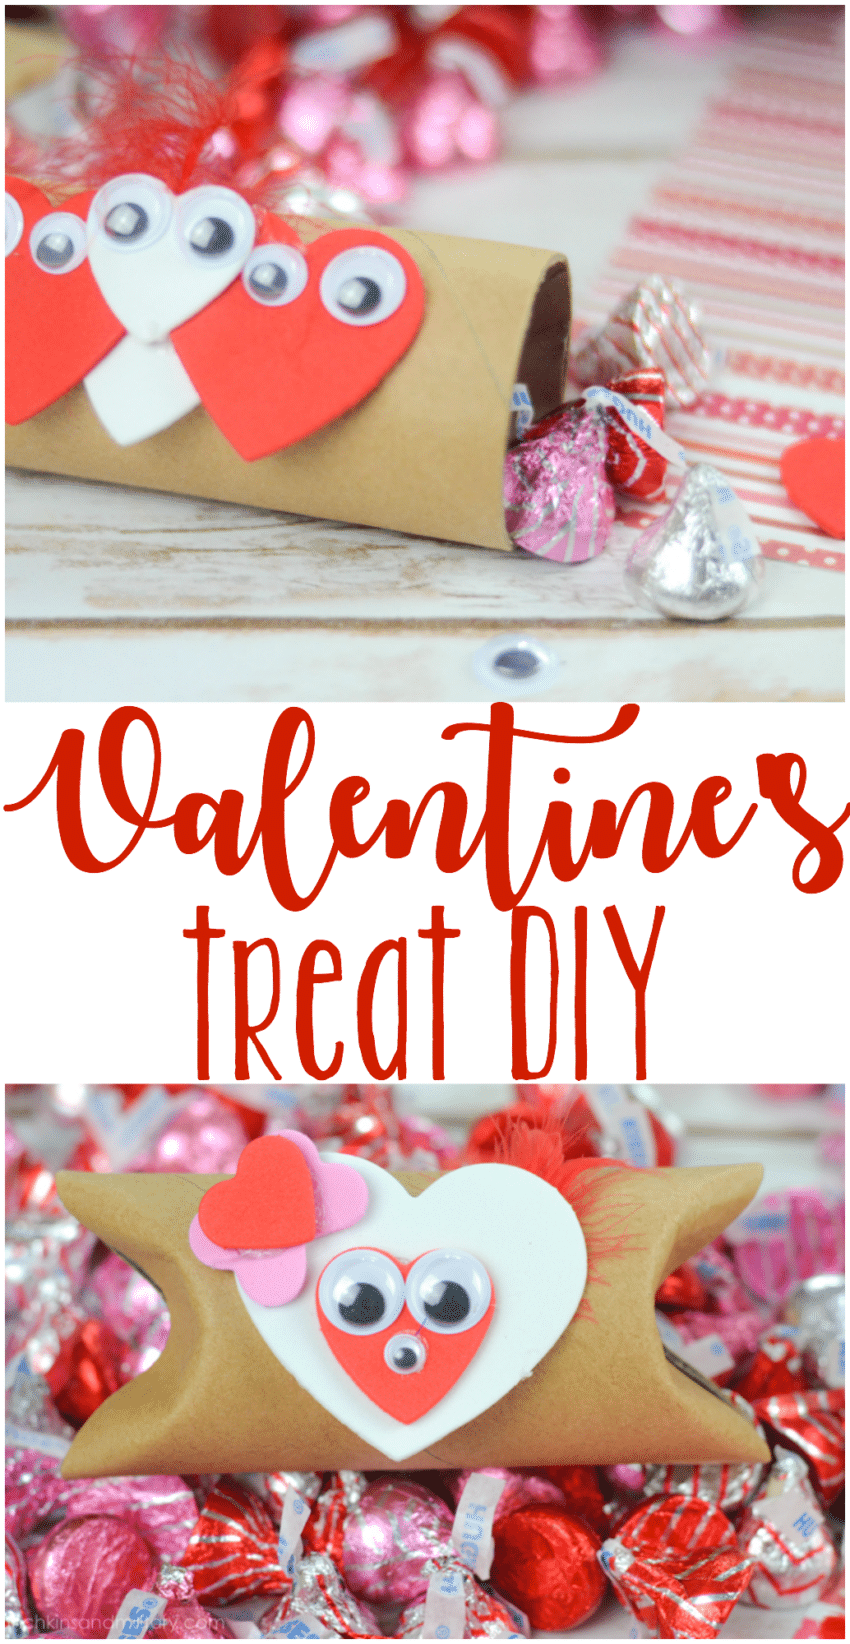 Fun DIY craft idea for the whole family! Perfect for creating classroom Valentine's treats!